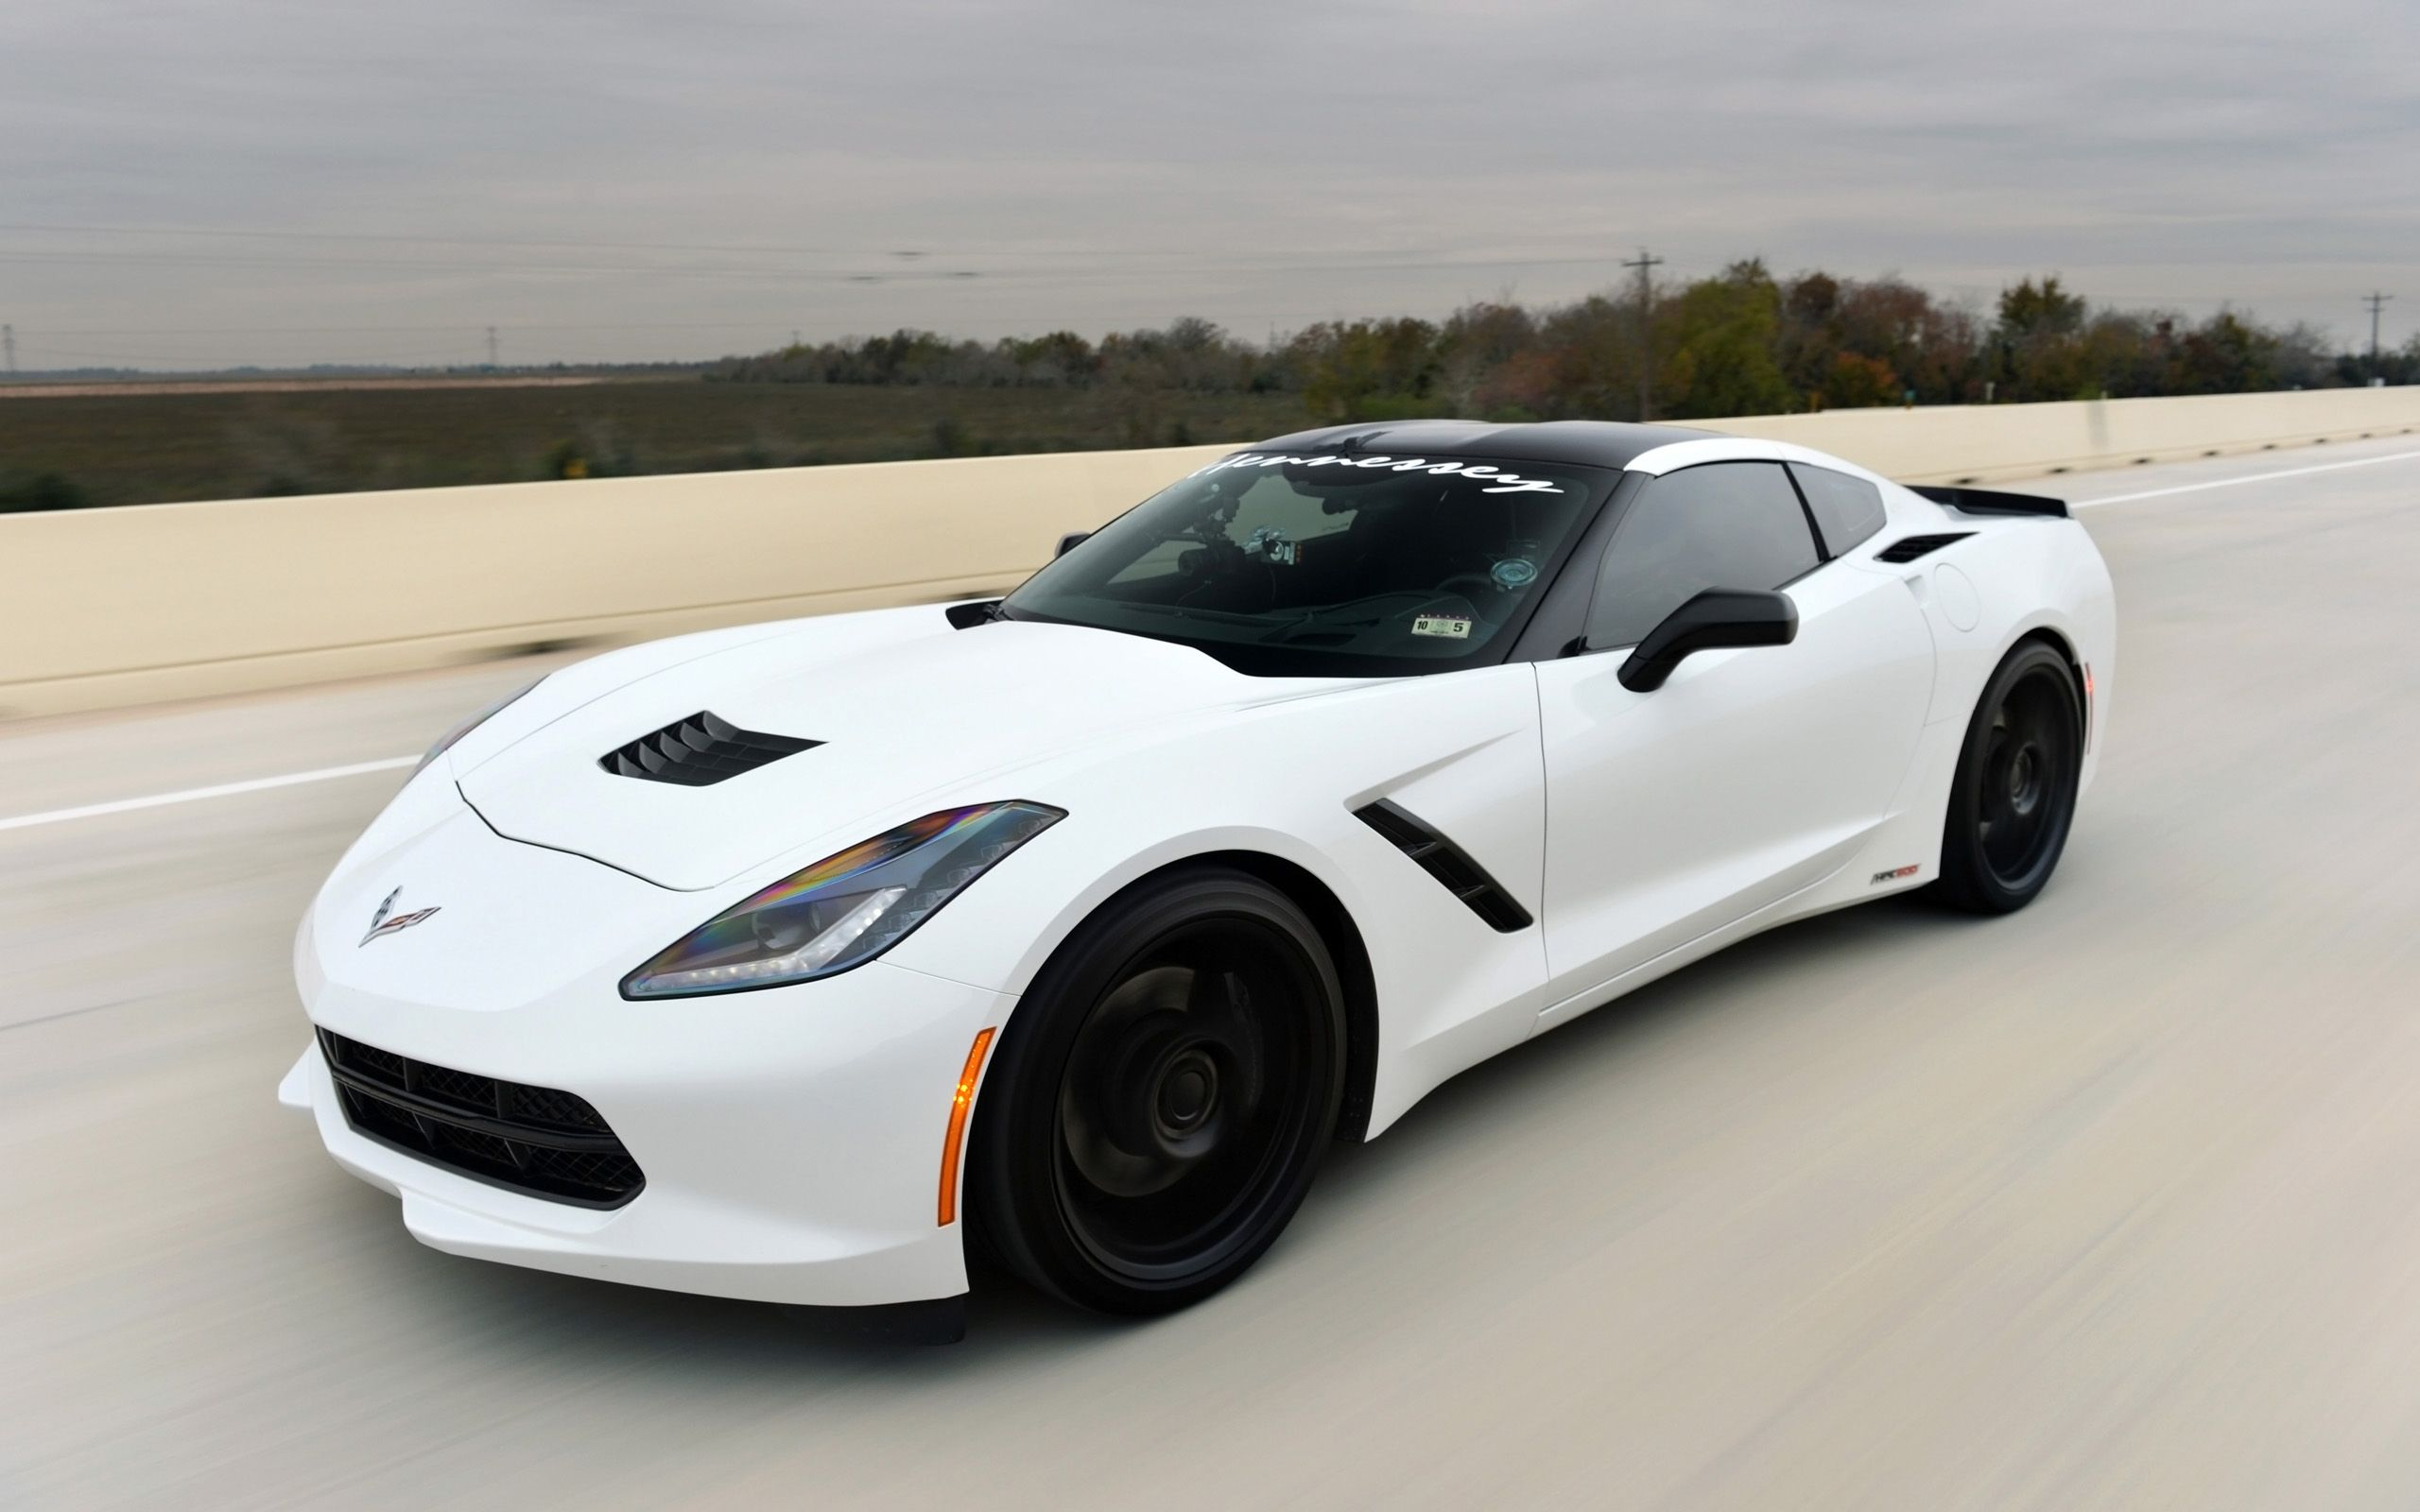 Black Corvette Stingray Wallpaper No 1 Wallpaper Hd